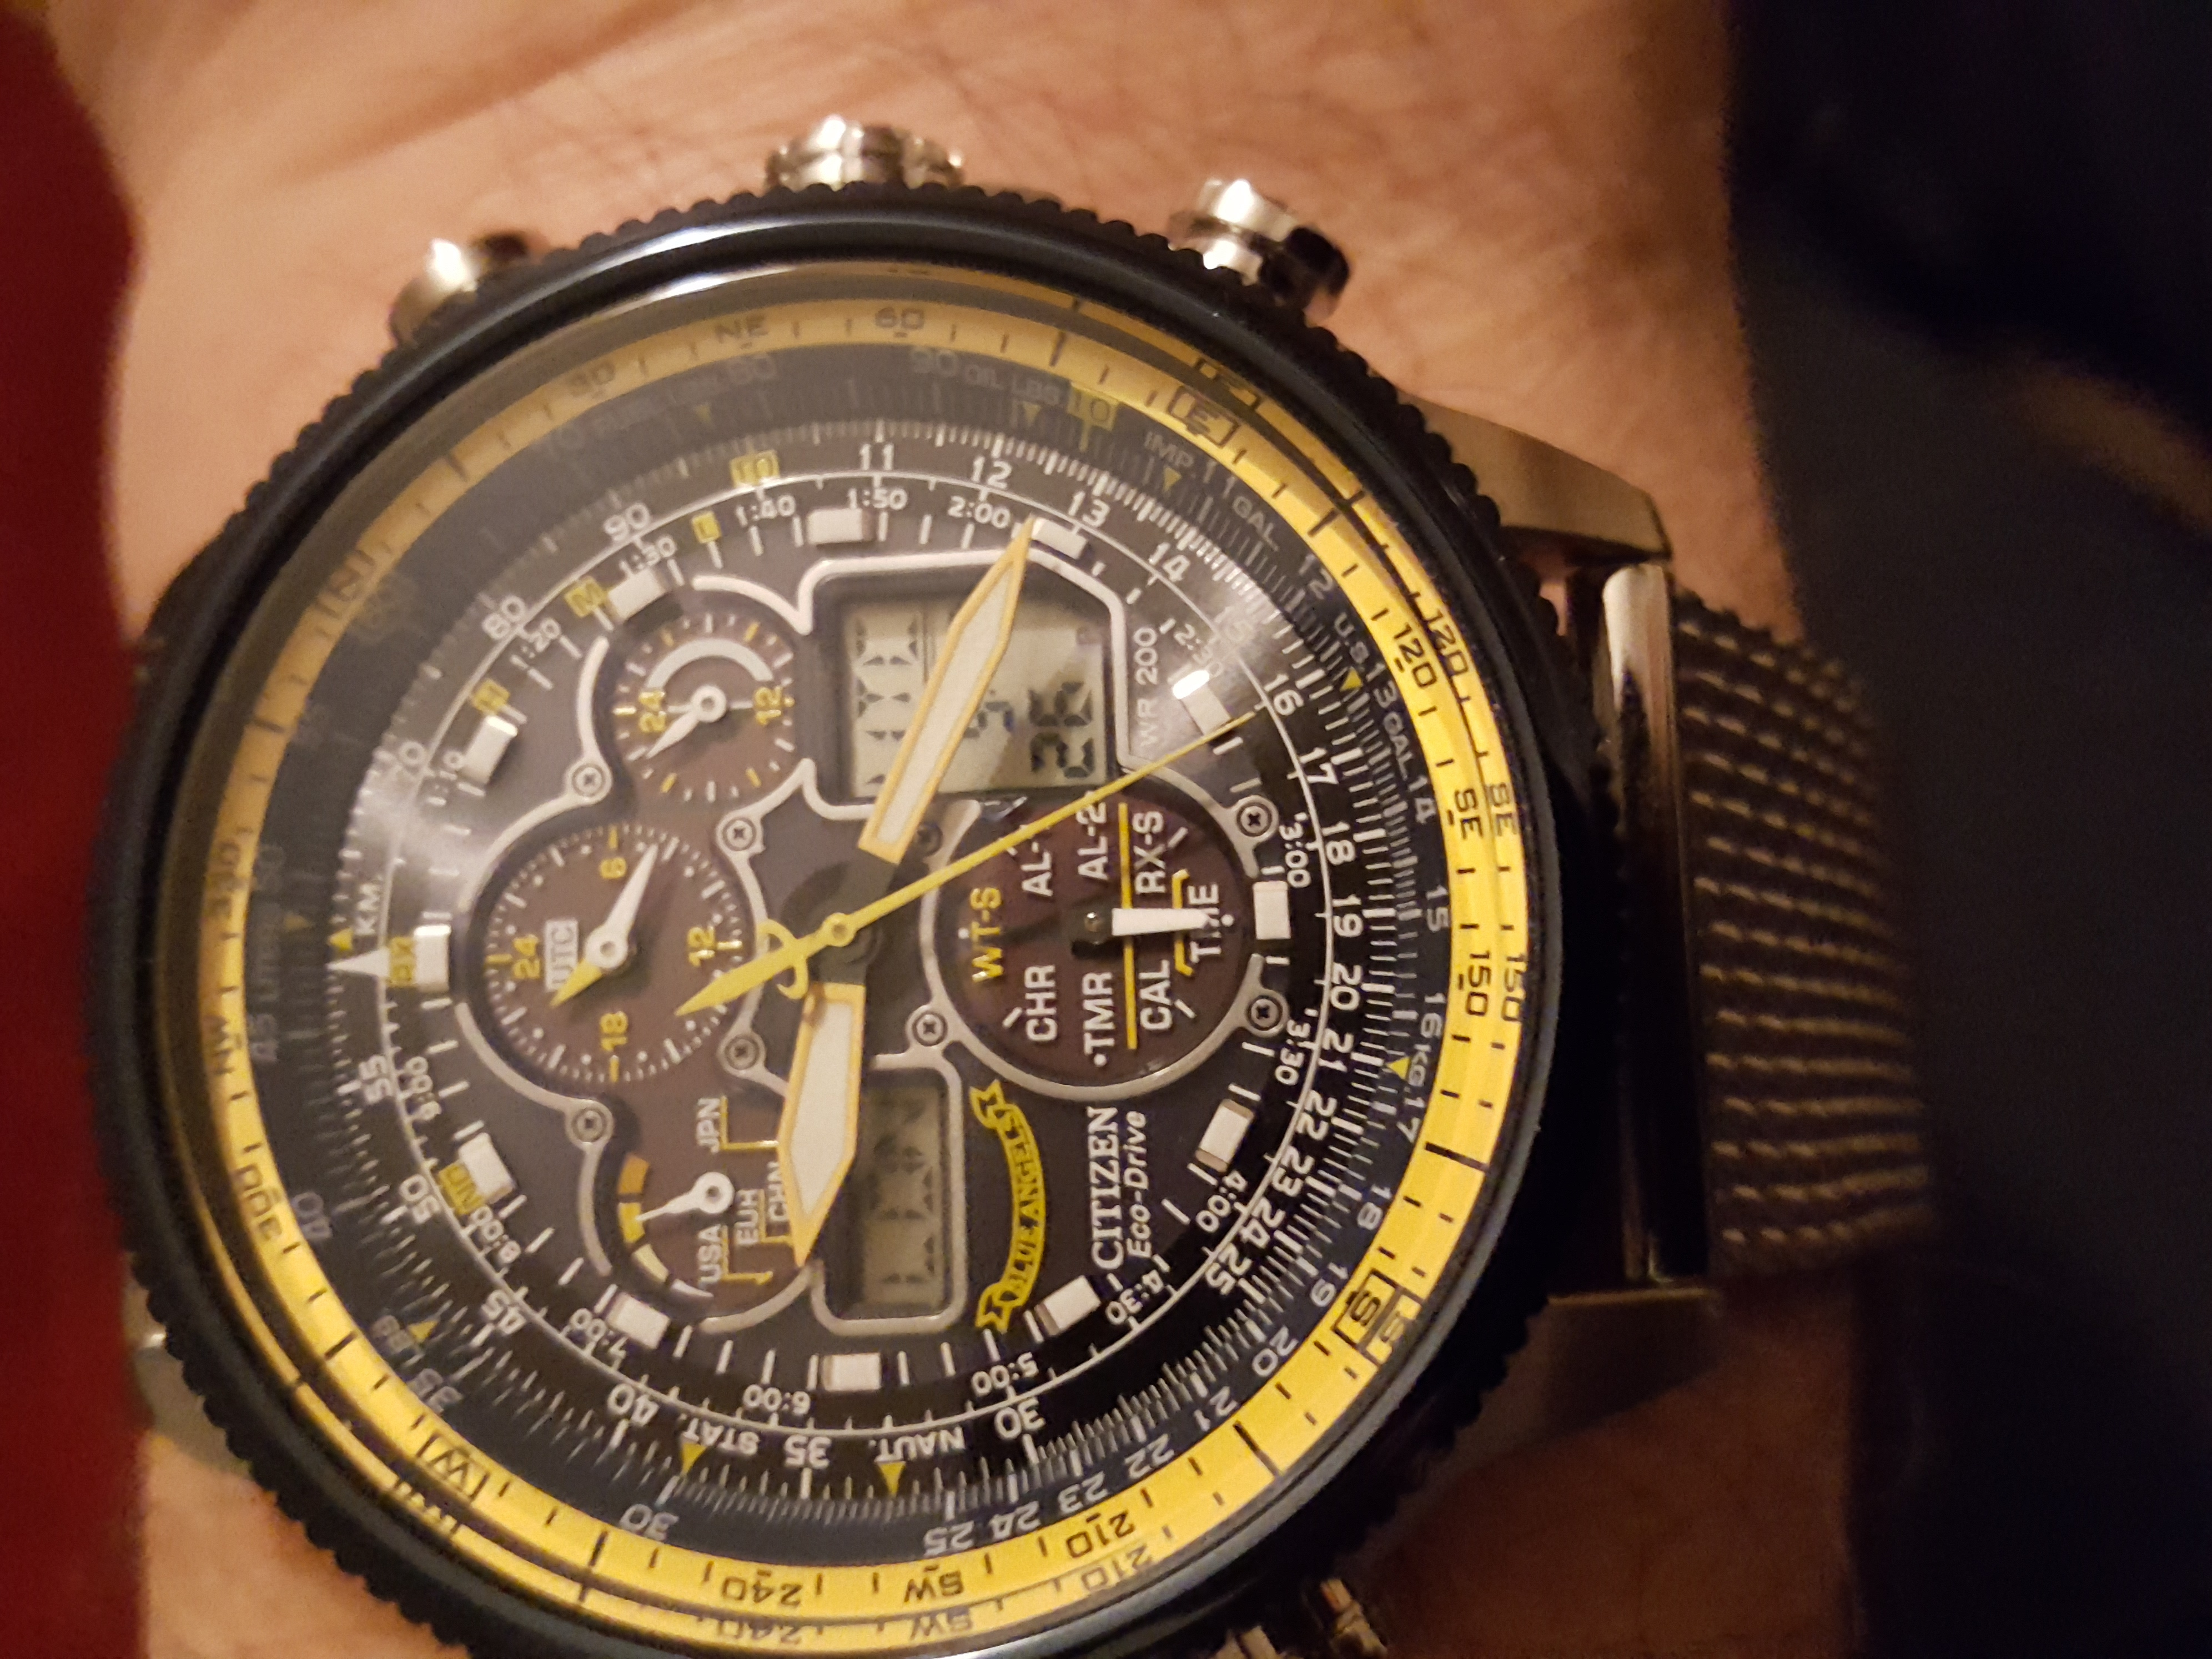 2213fb81acb28 Its superb watch well made and nice and chunky as i only where it as a  going out watch its so well made and you get a 5-years guarantee so great